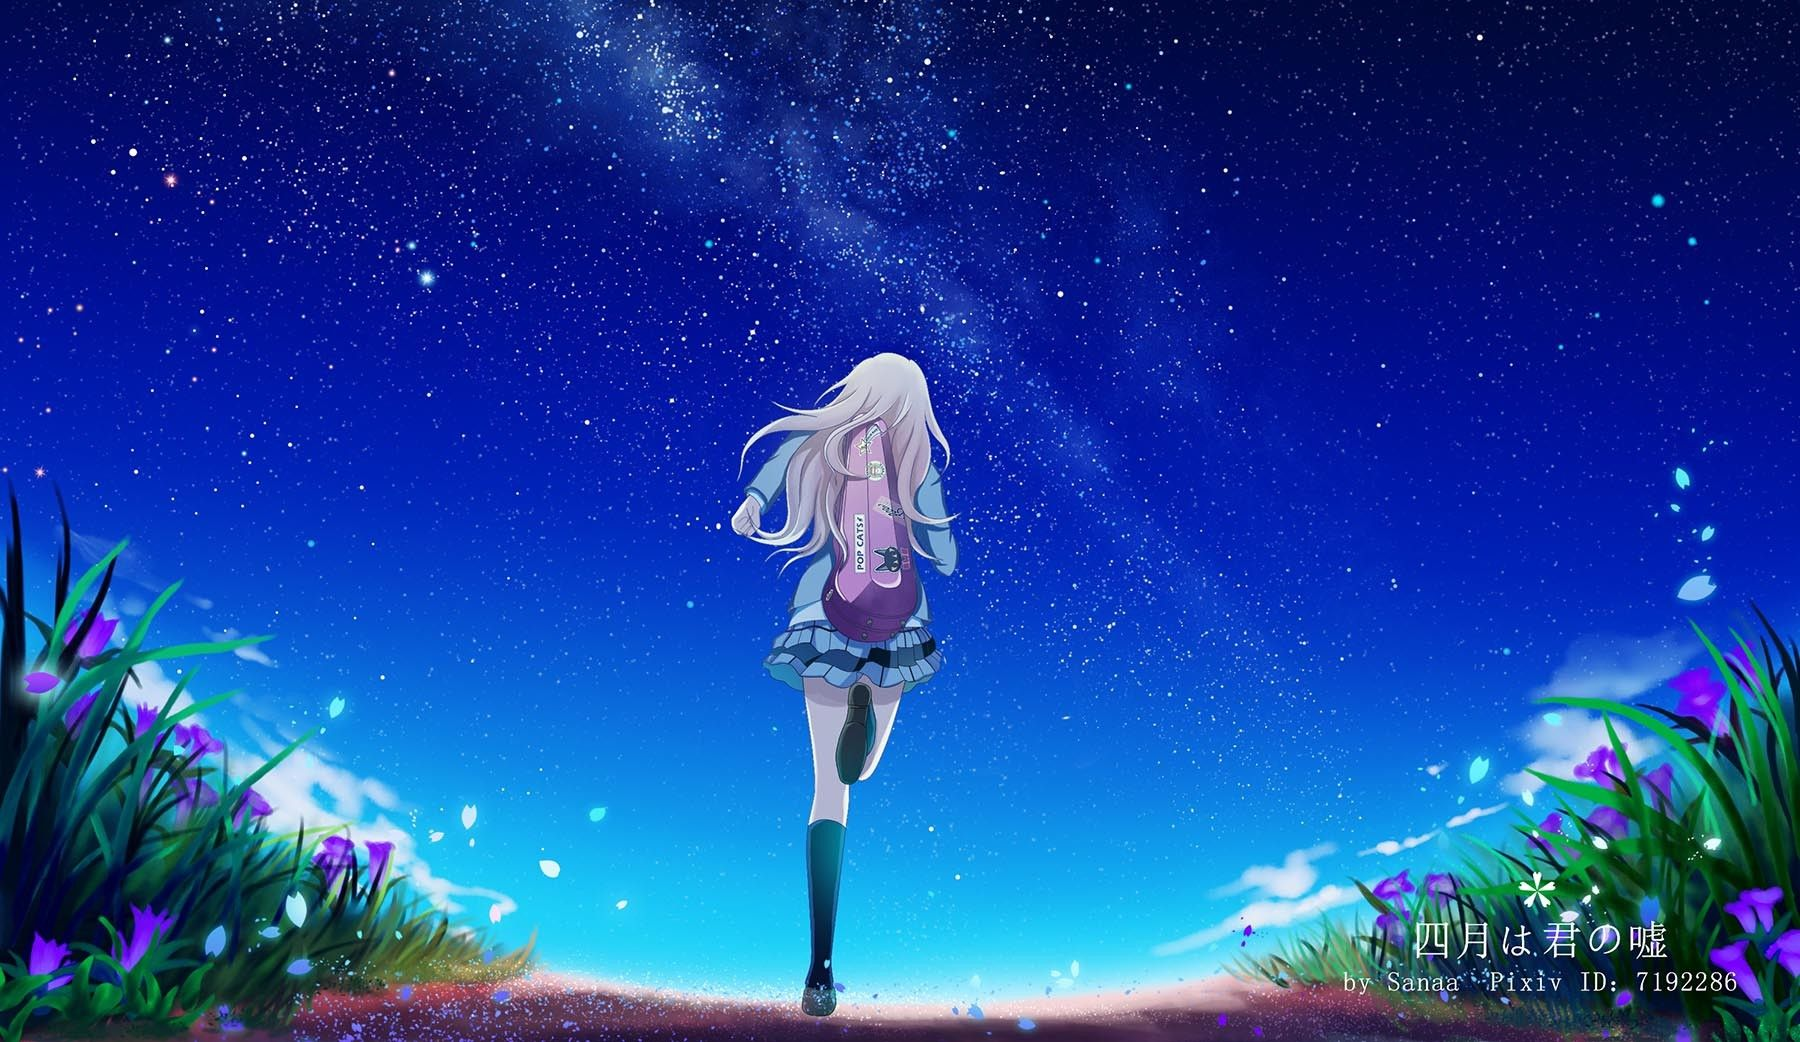 Pin By Sam On Wallpapers Your Lie In April You Lied Anime Galaxy Download wallpaper anime shigatsu wa